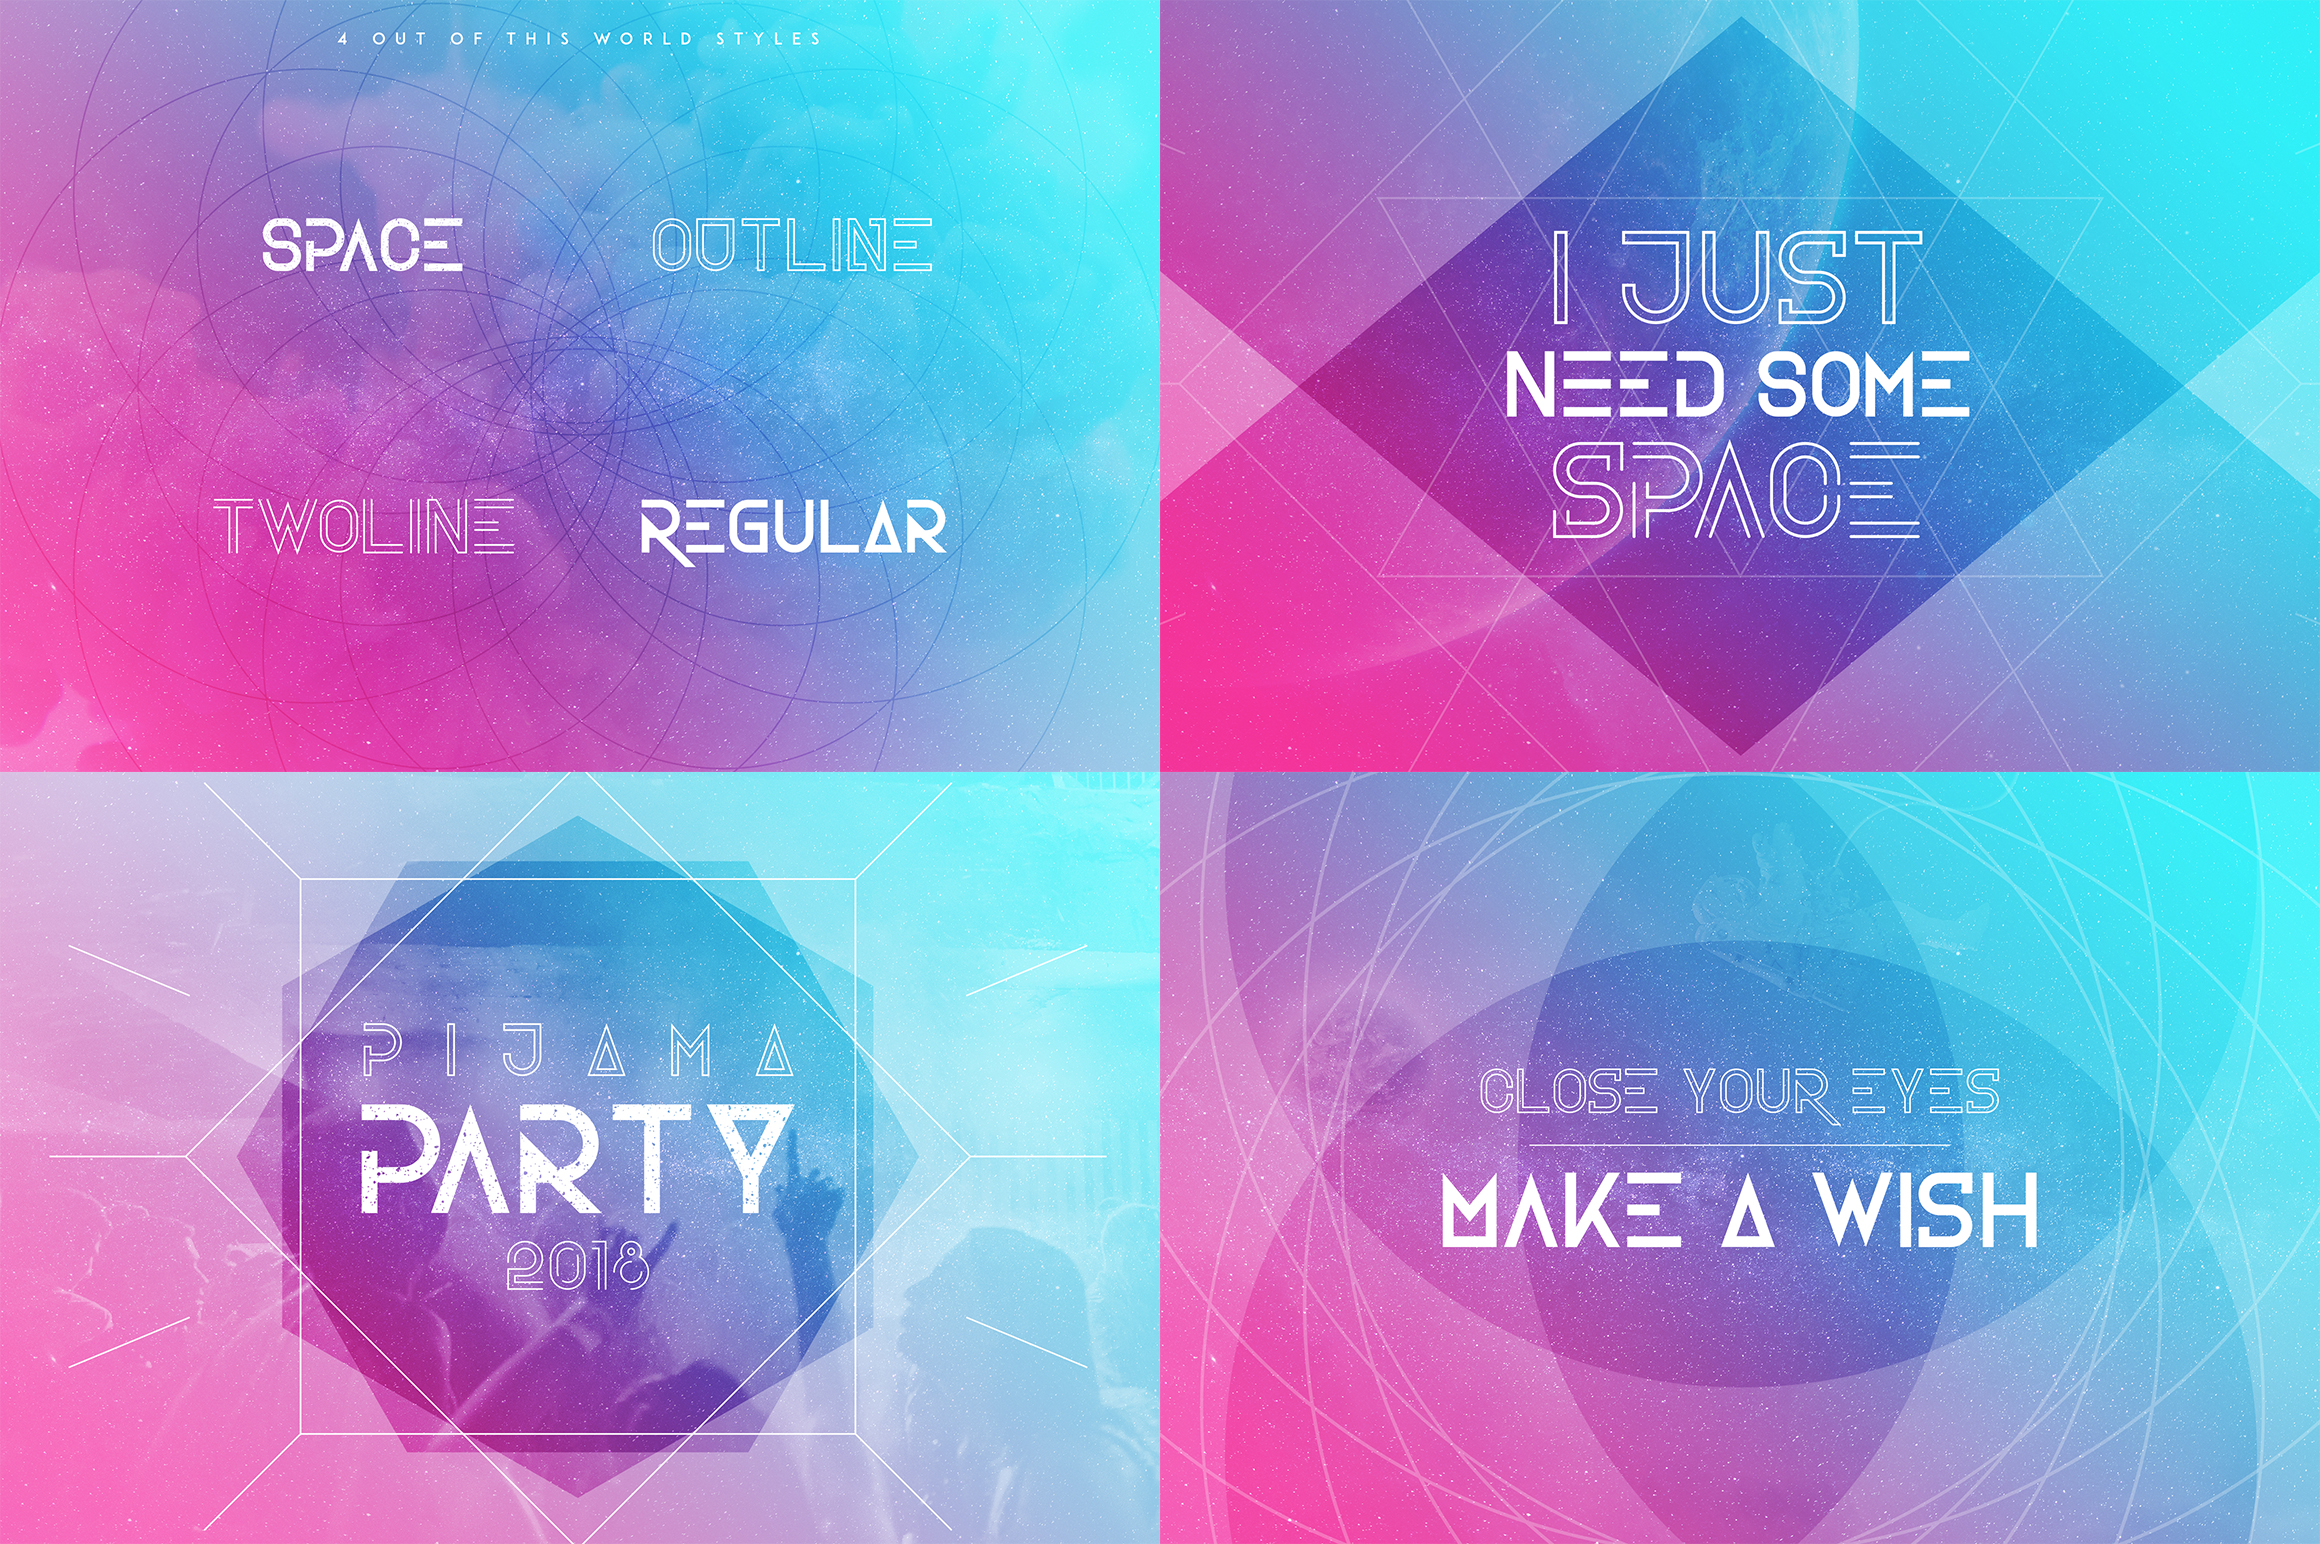 23in1 Sans and Display font bundle | Volume 2 example image 7